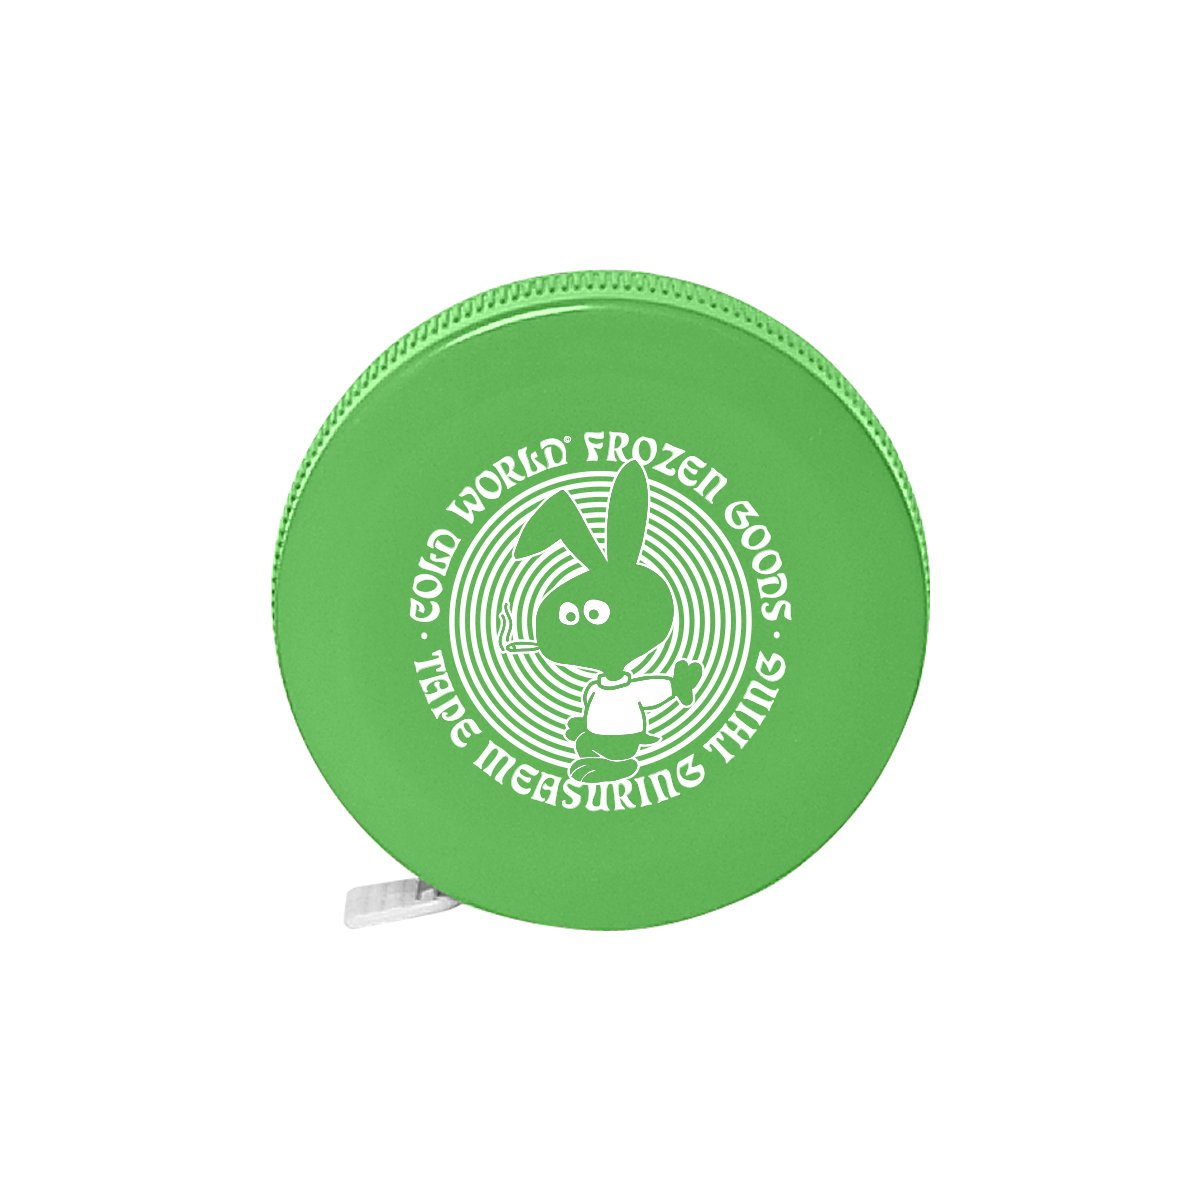 【COLD WORLD FROZEN GOODS/コールドワールドフローズングッズ】COLD BUNNY TAPE MEASURE  メジャー / LIME GREEN